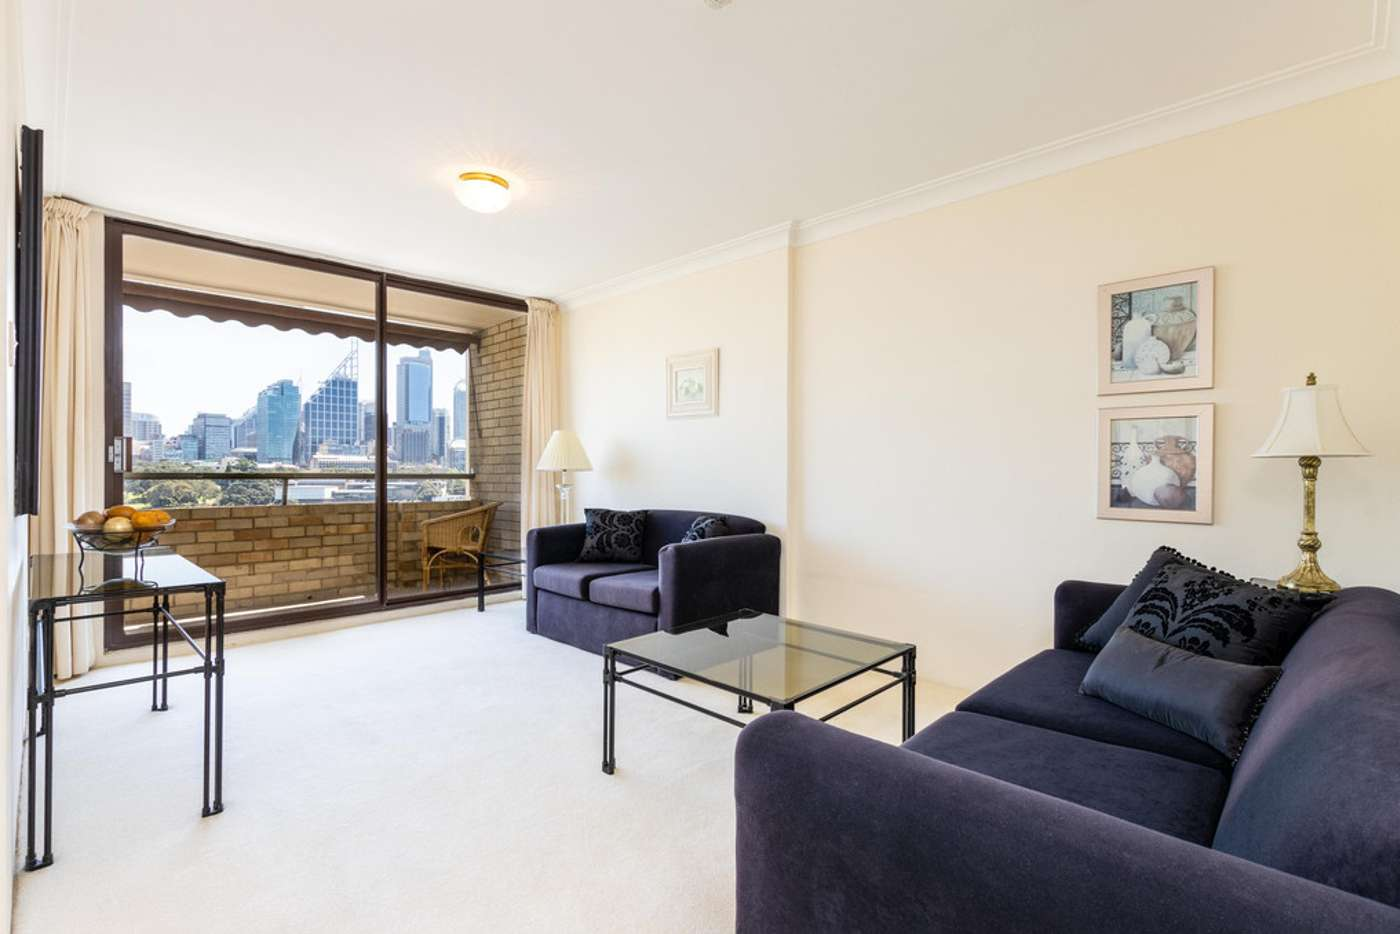 Fifth view of Homely apartment listing, 49/103 Victoria Street, Potts Point NSW 2011